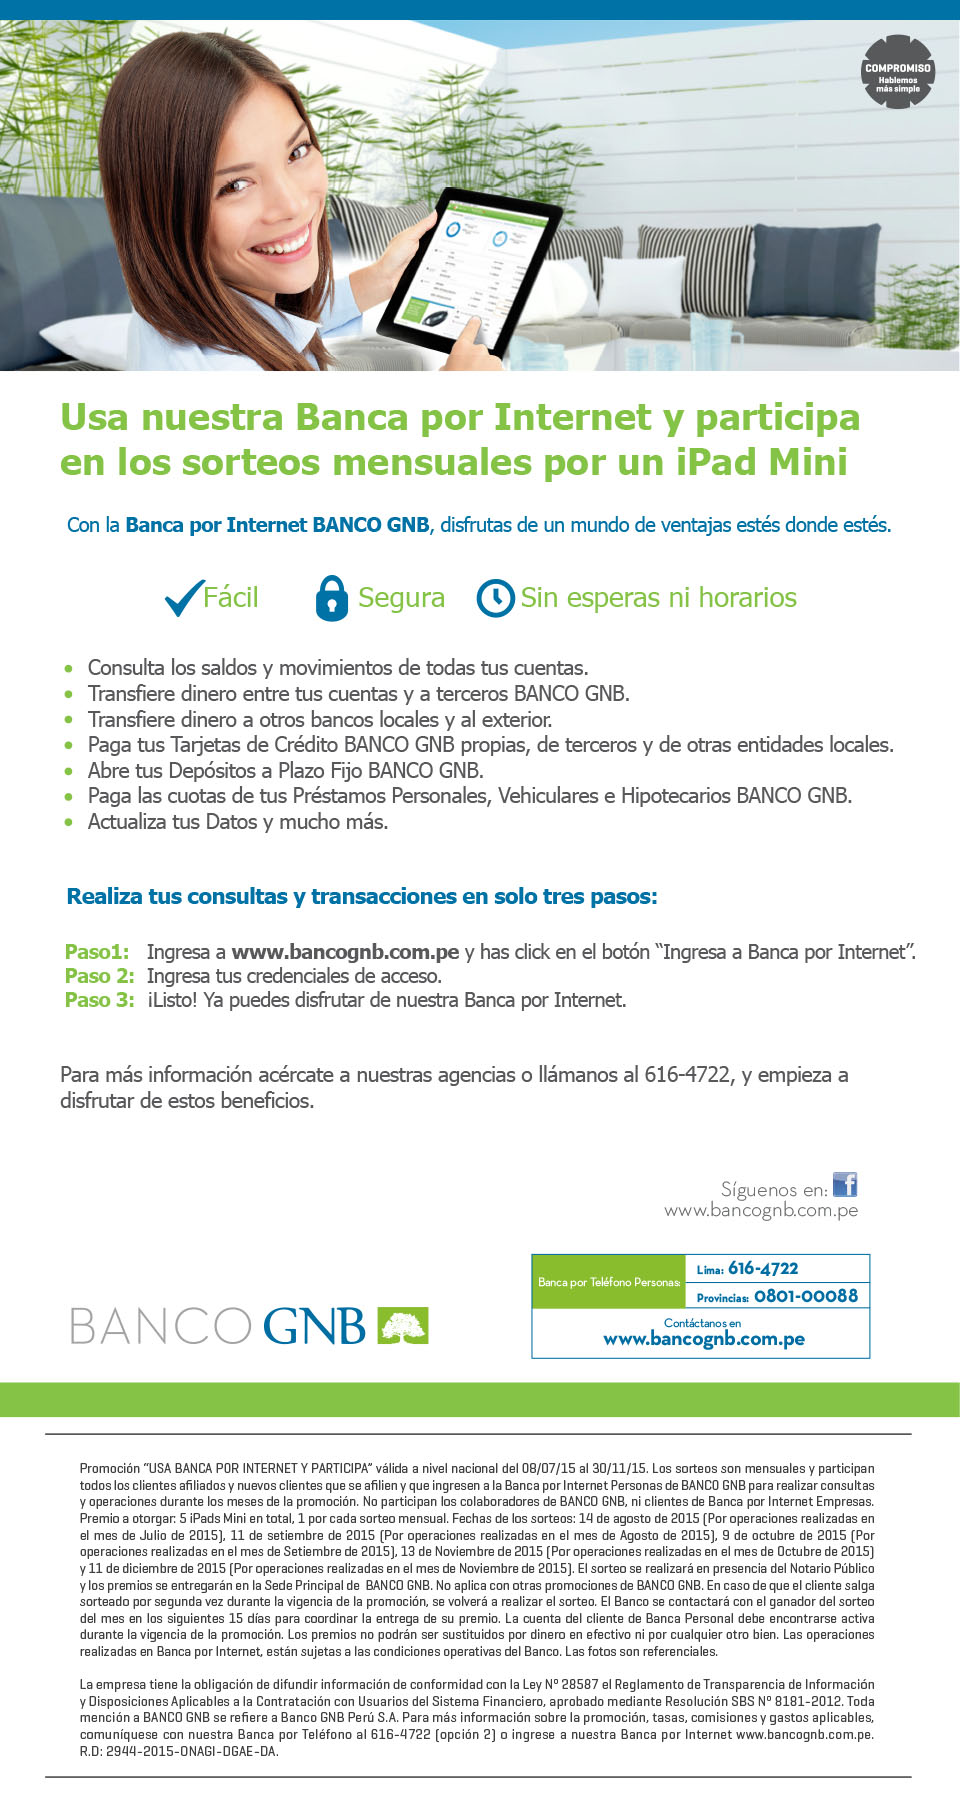 Usa nuestra banca por internet for Banco exterior internet 24